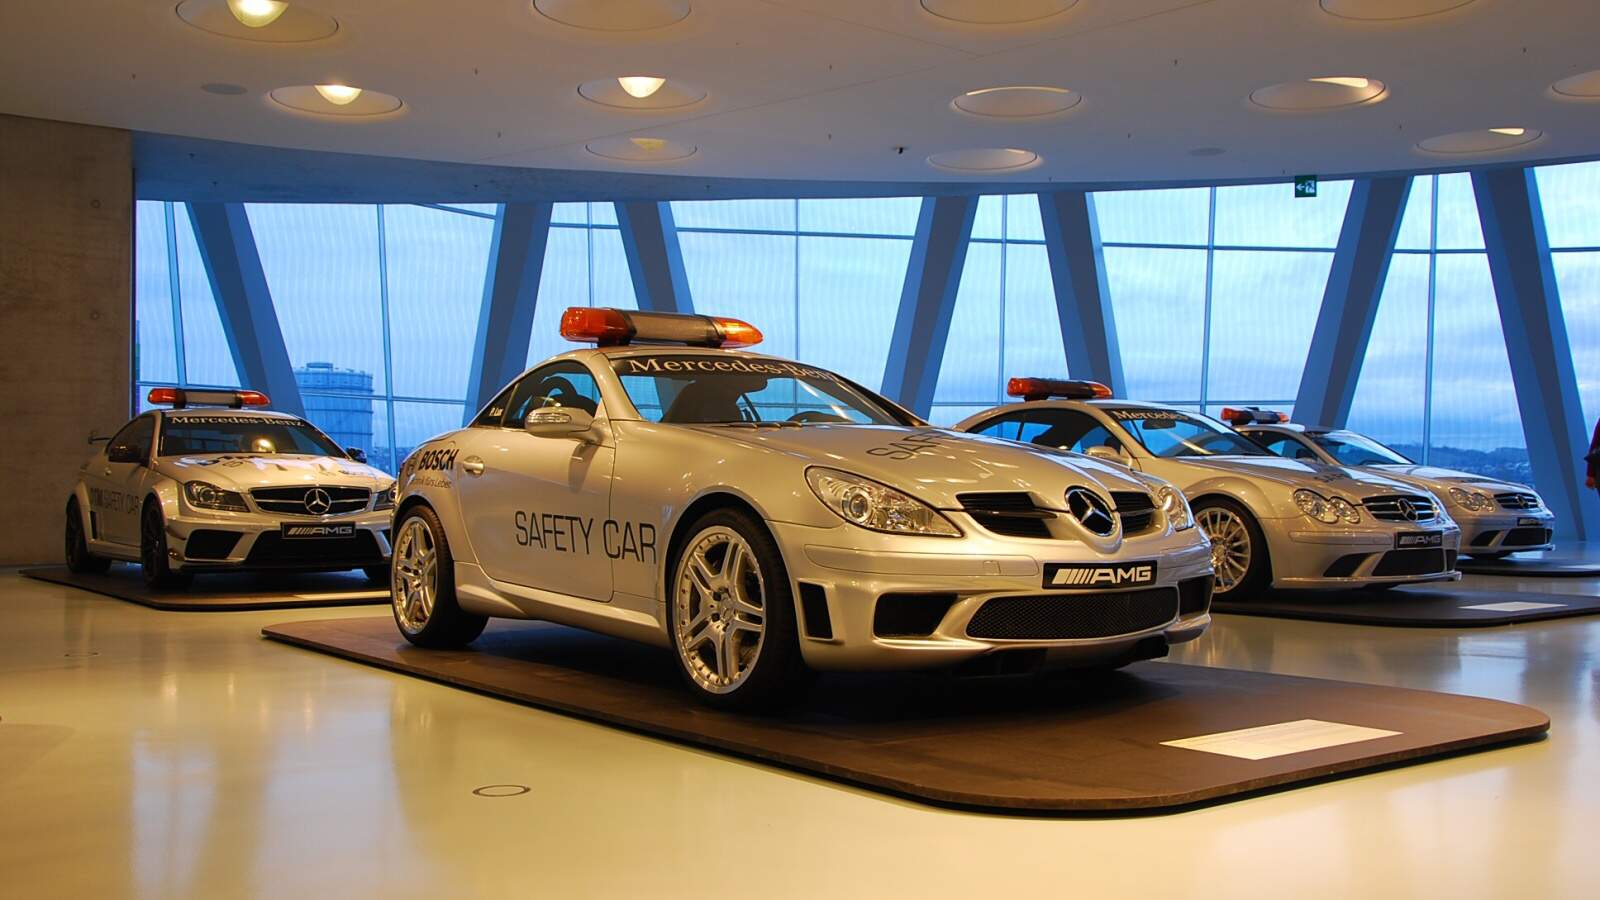 Safety car Mercedes-Benz SLK